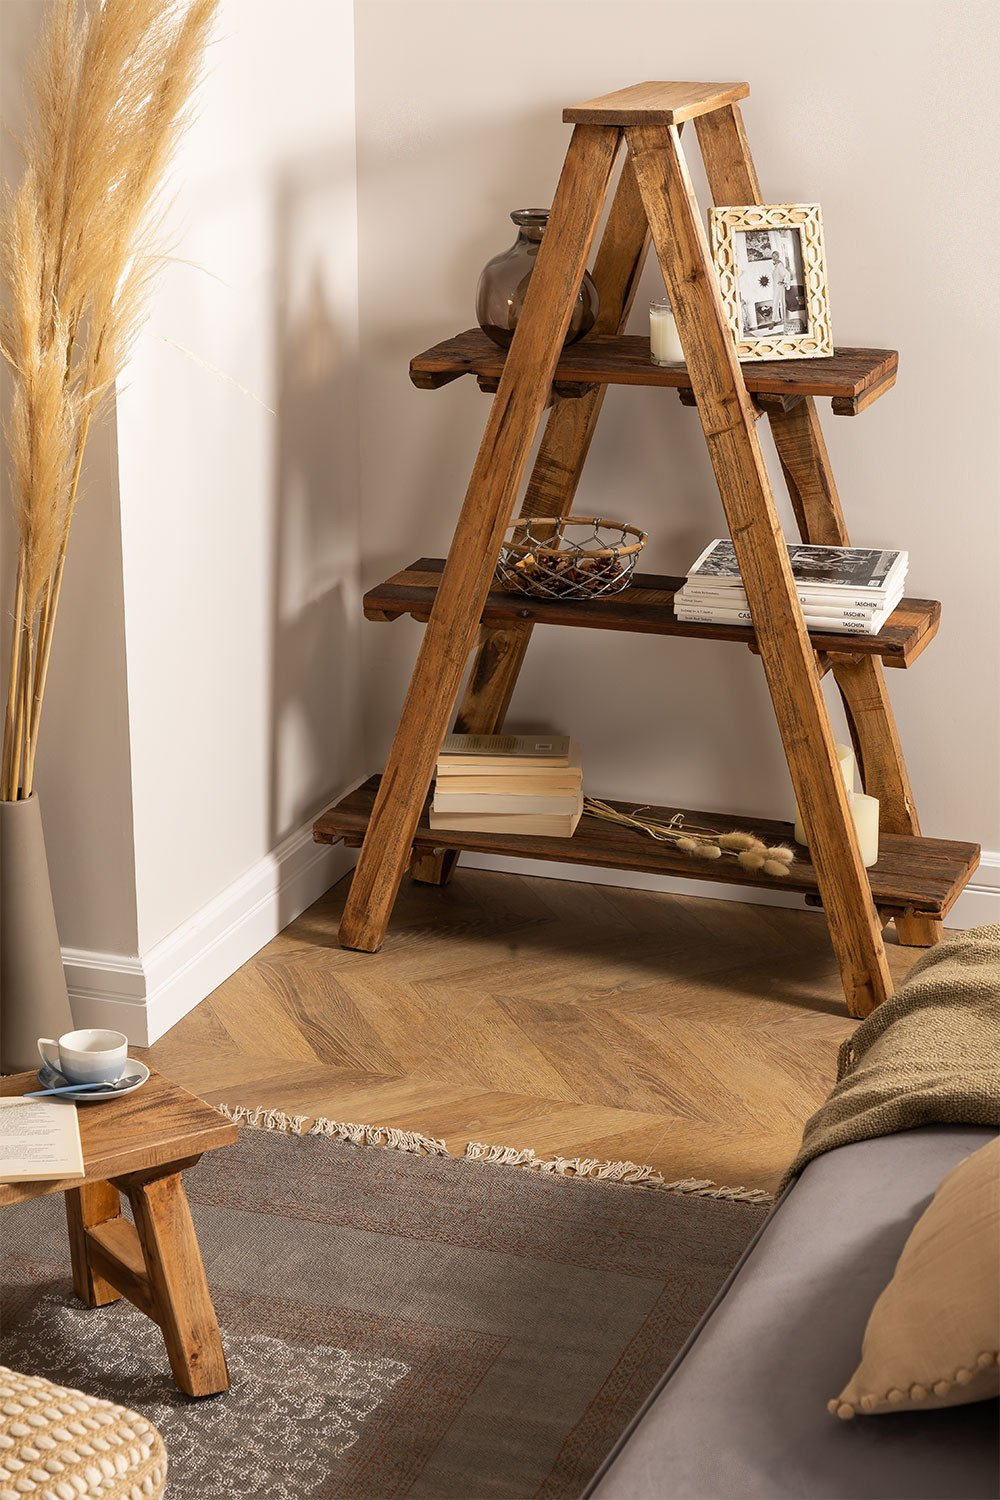 Anpers Recycled Wood Shelving, gallery image 1